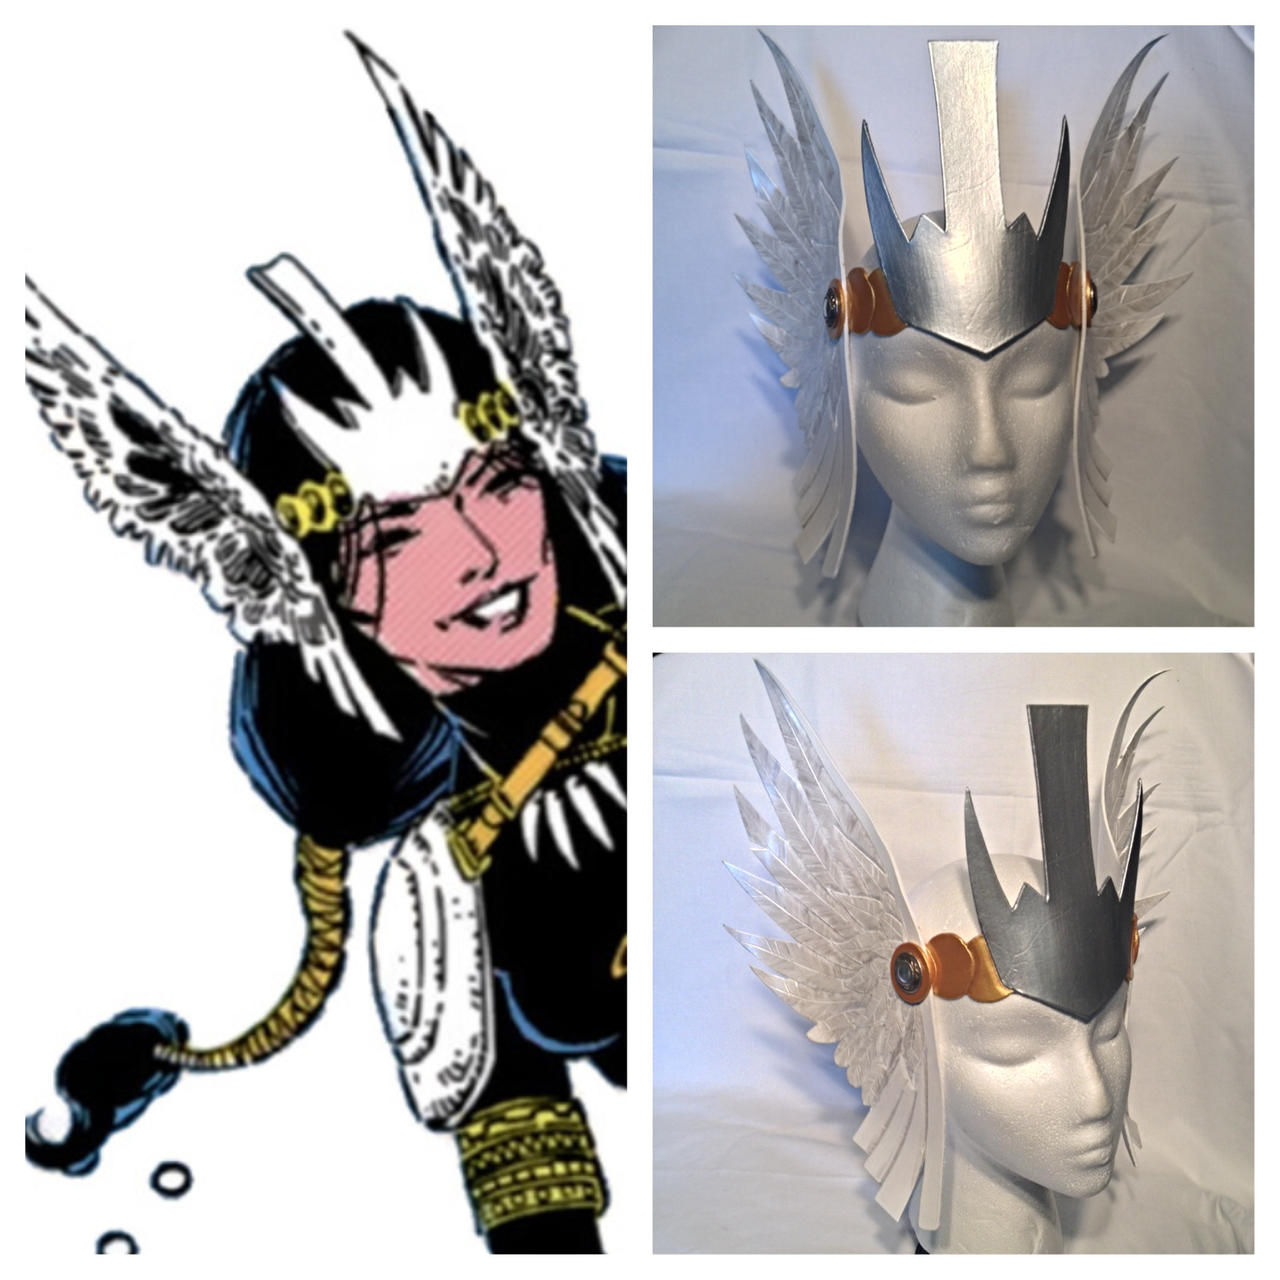 valkyrie marvel costume - photo #33